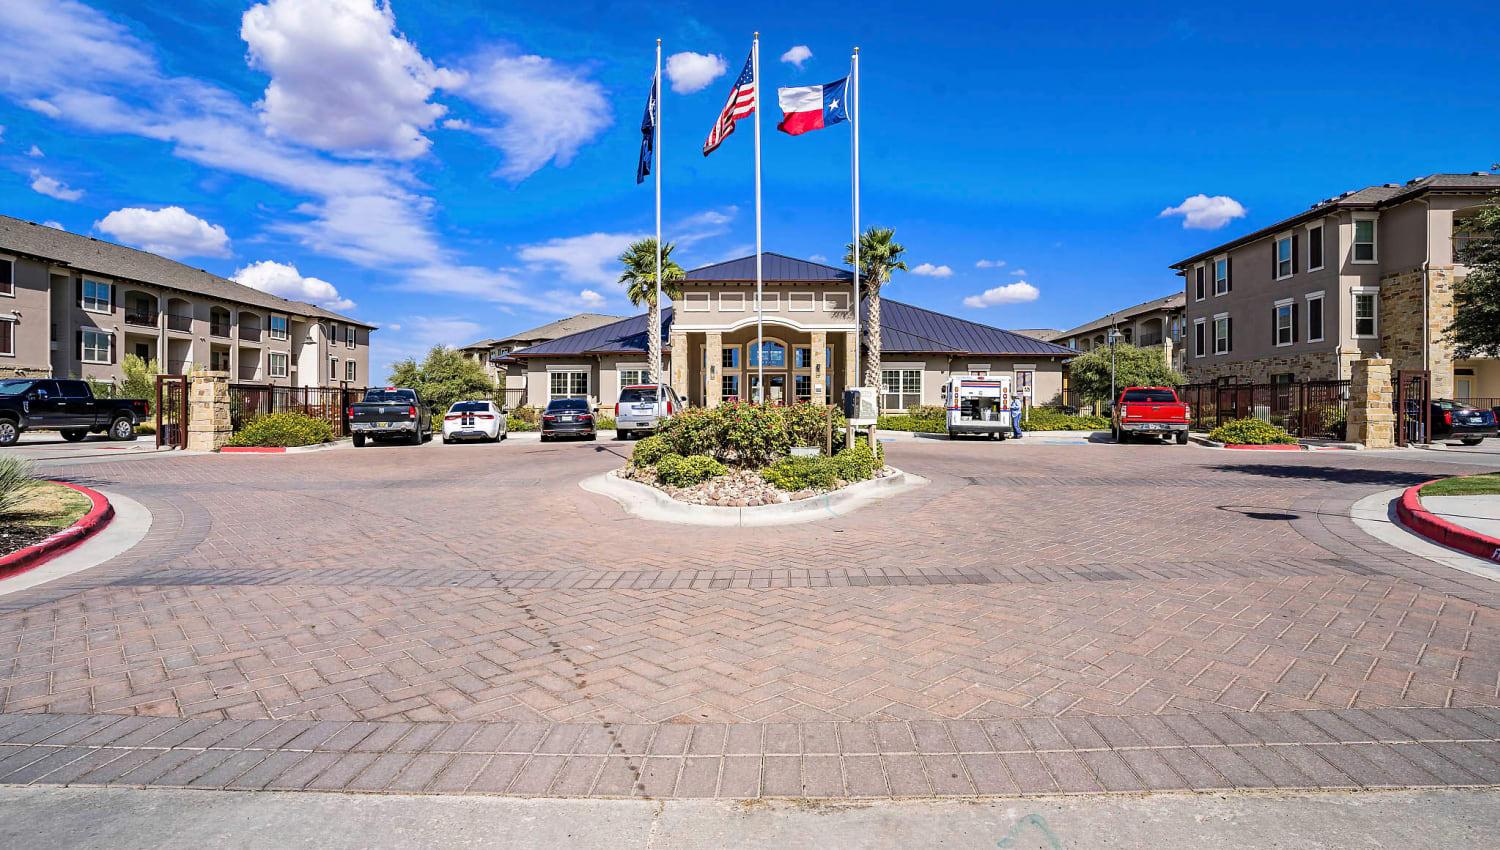 Flags and professionally maintained landscaping at the entrance to Sundance Creek in Midland, Texas